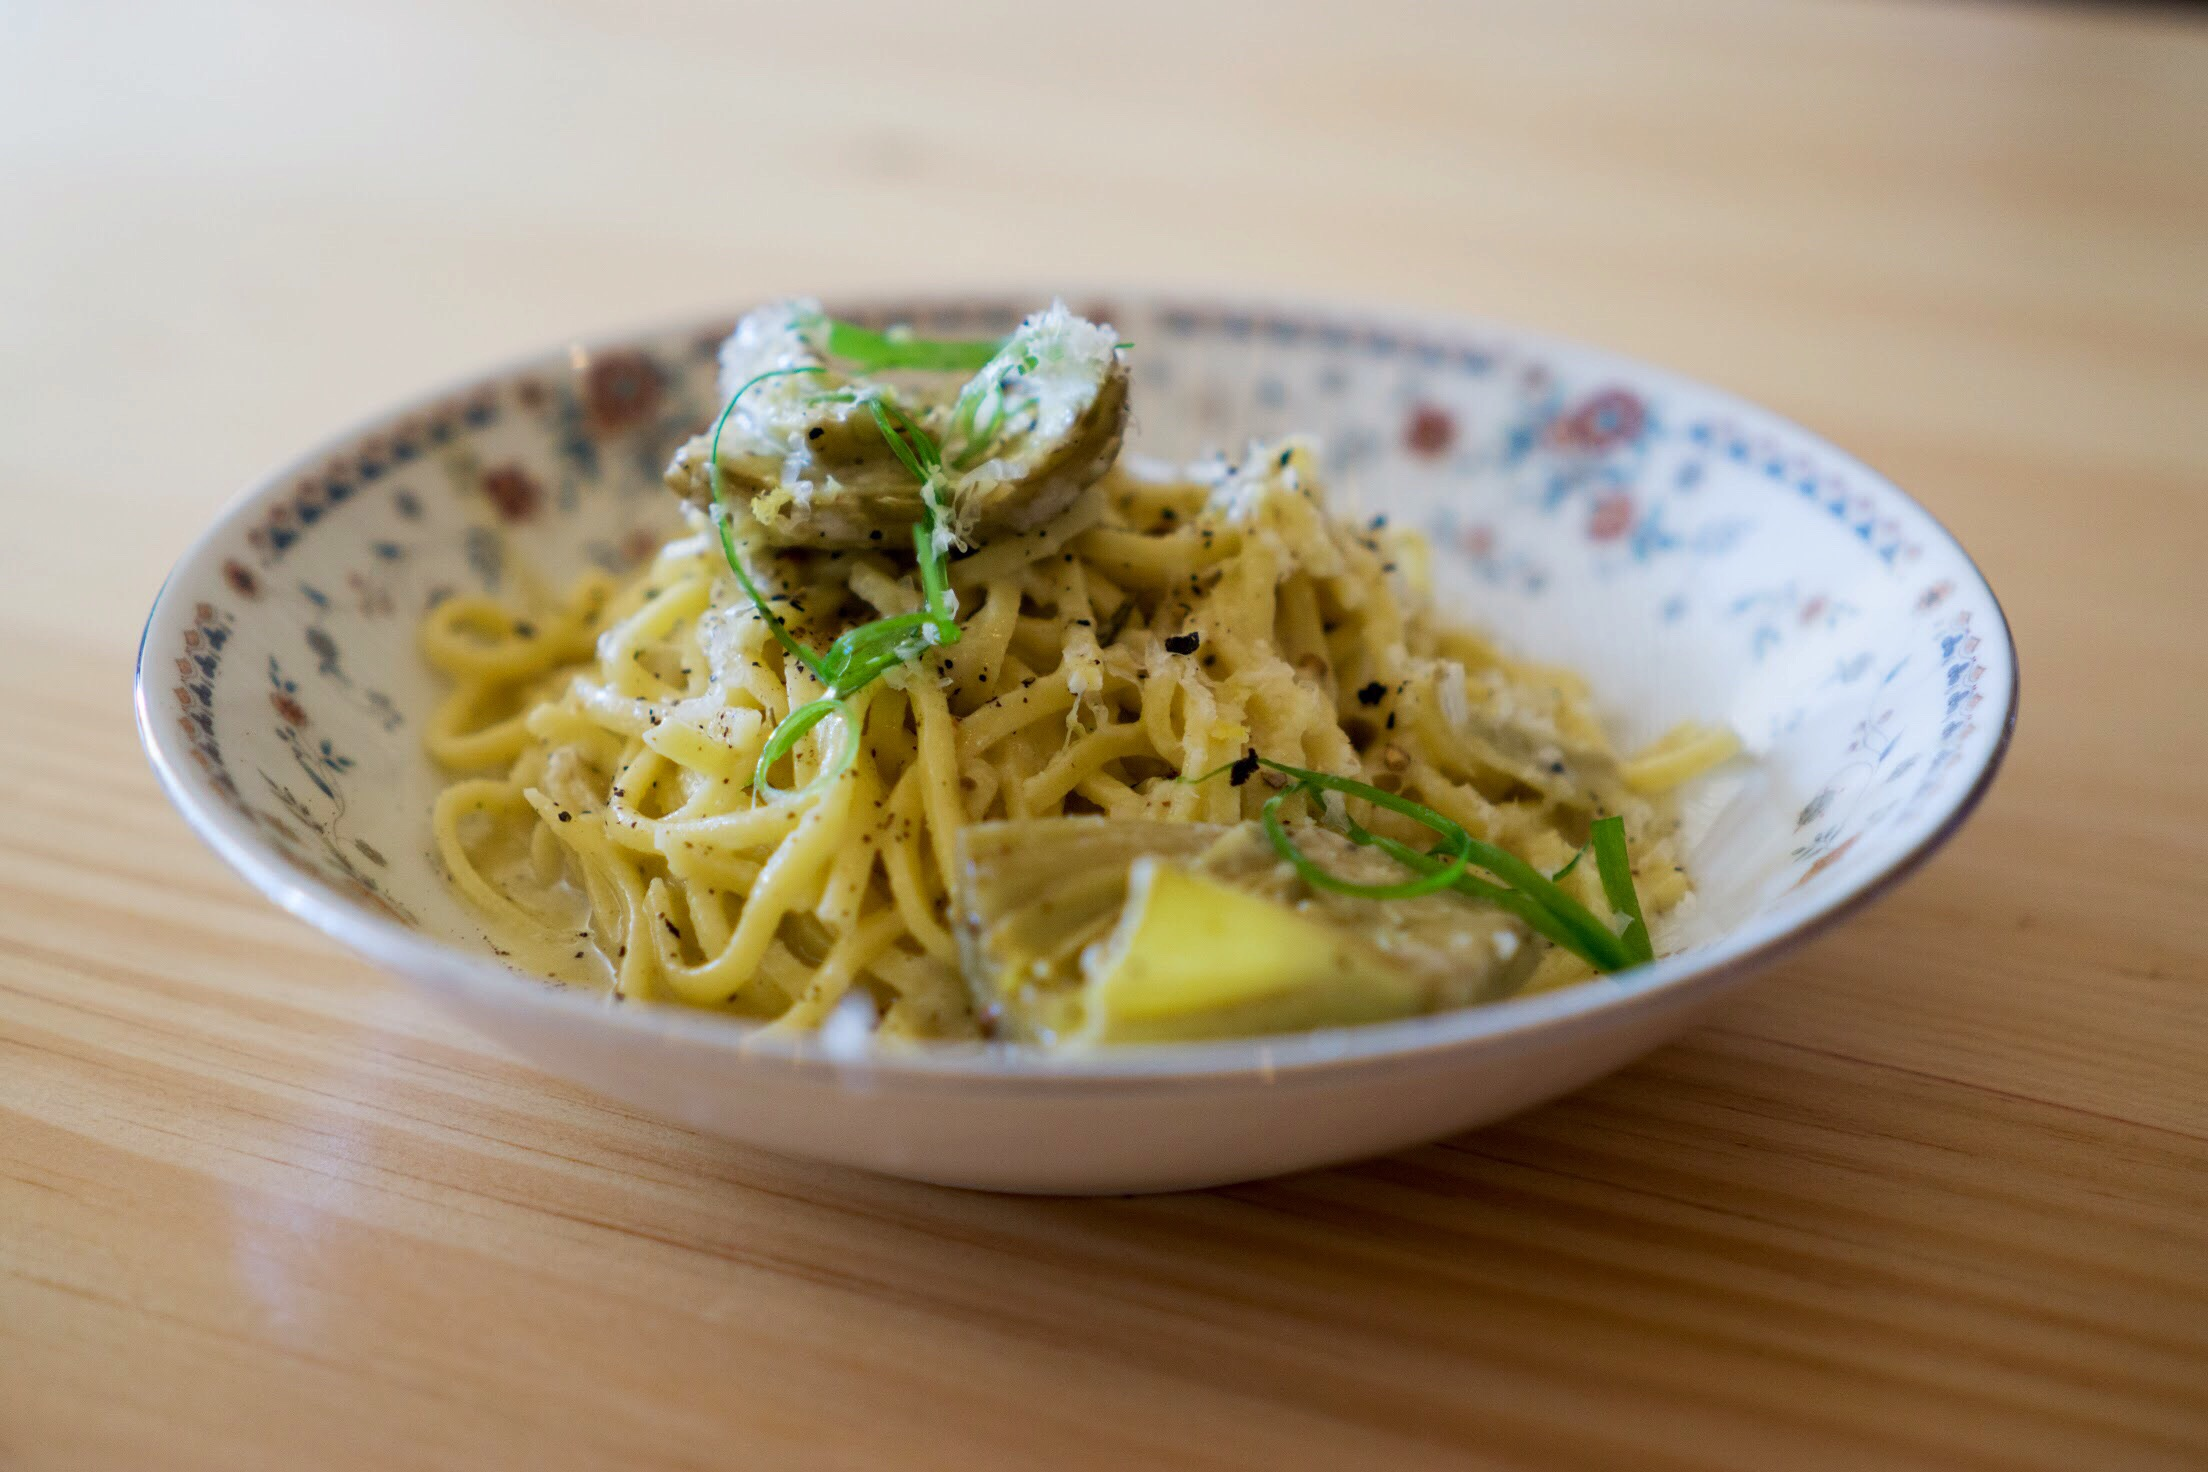 Spaghetti alla chitarra with preserved artichokes, aged cheese, smoked black pepper and scallions.  Photo by Alycia Chrosniak